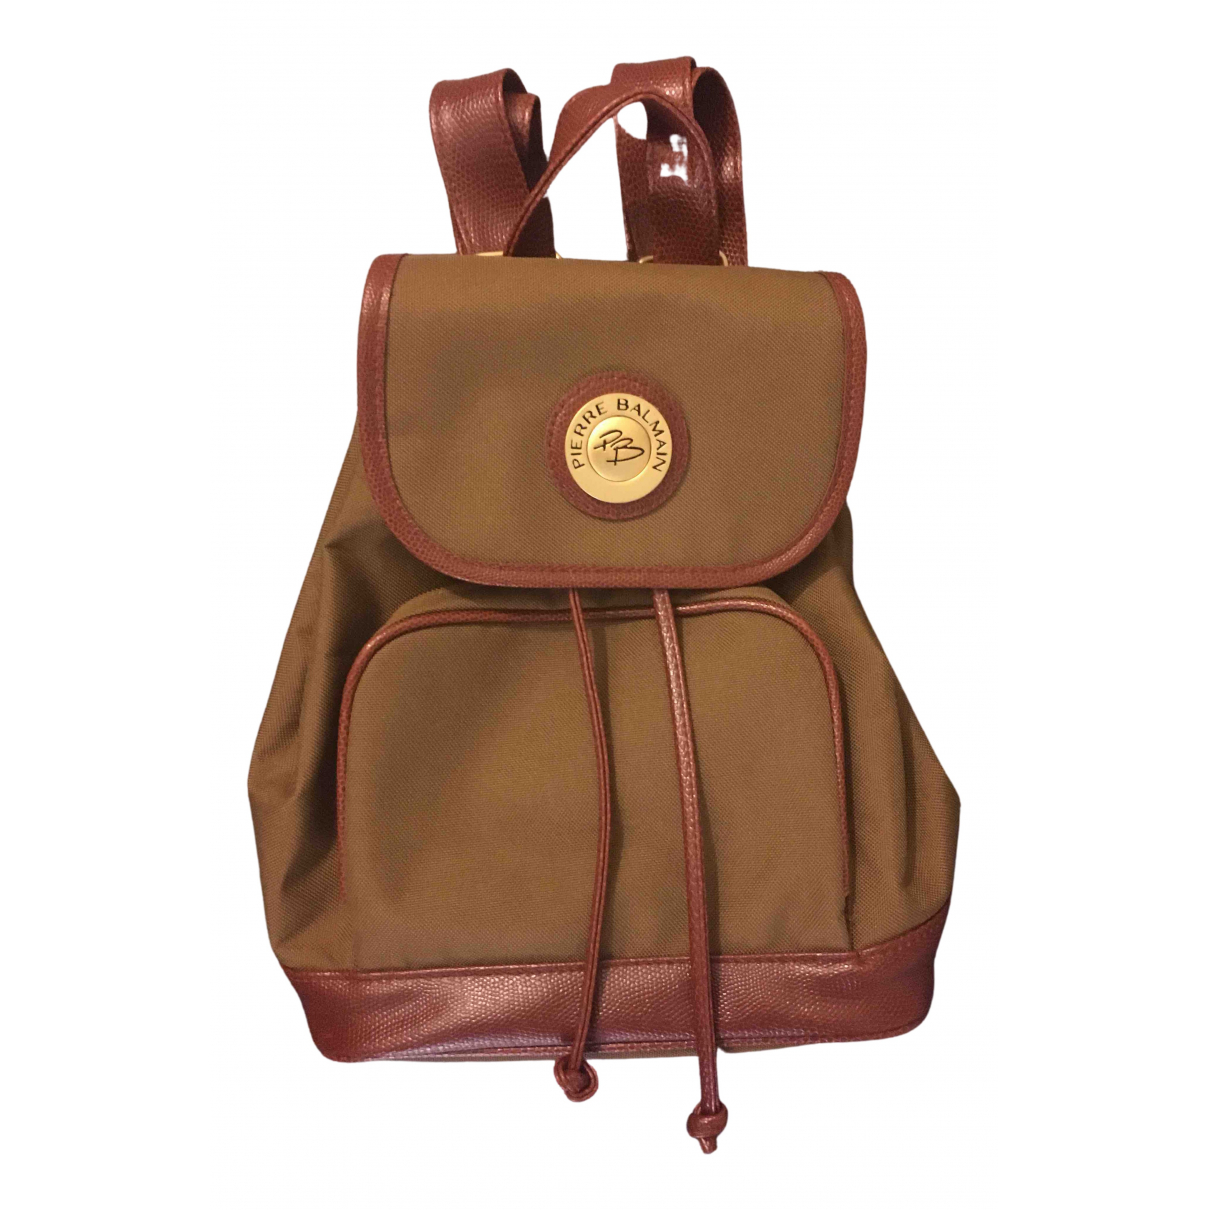 Pierre Balmain \N Brown Cloth backpack for Women \N